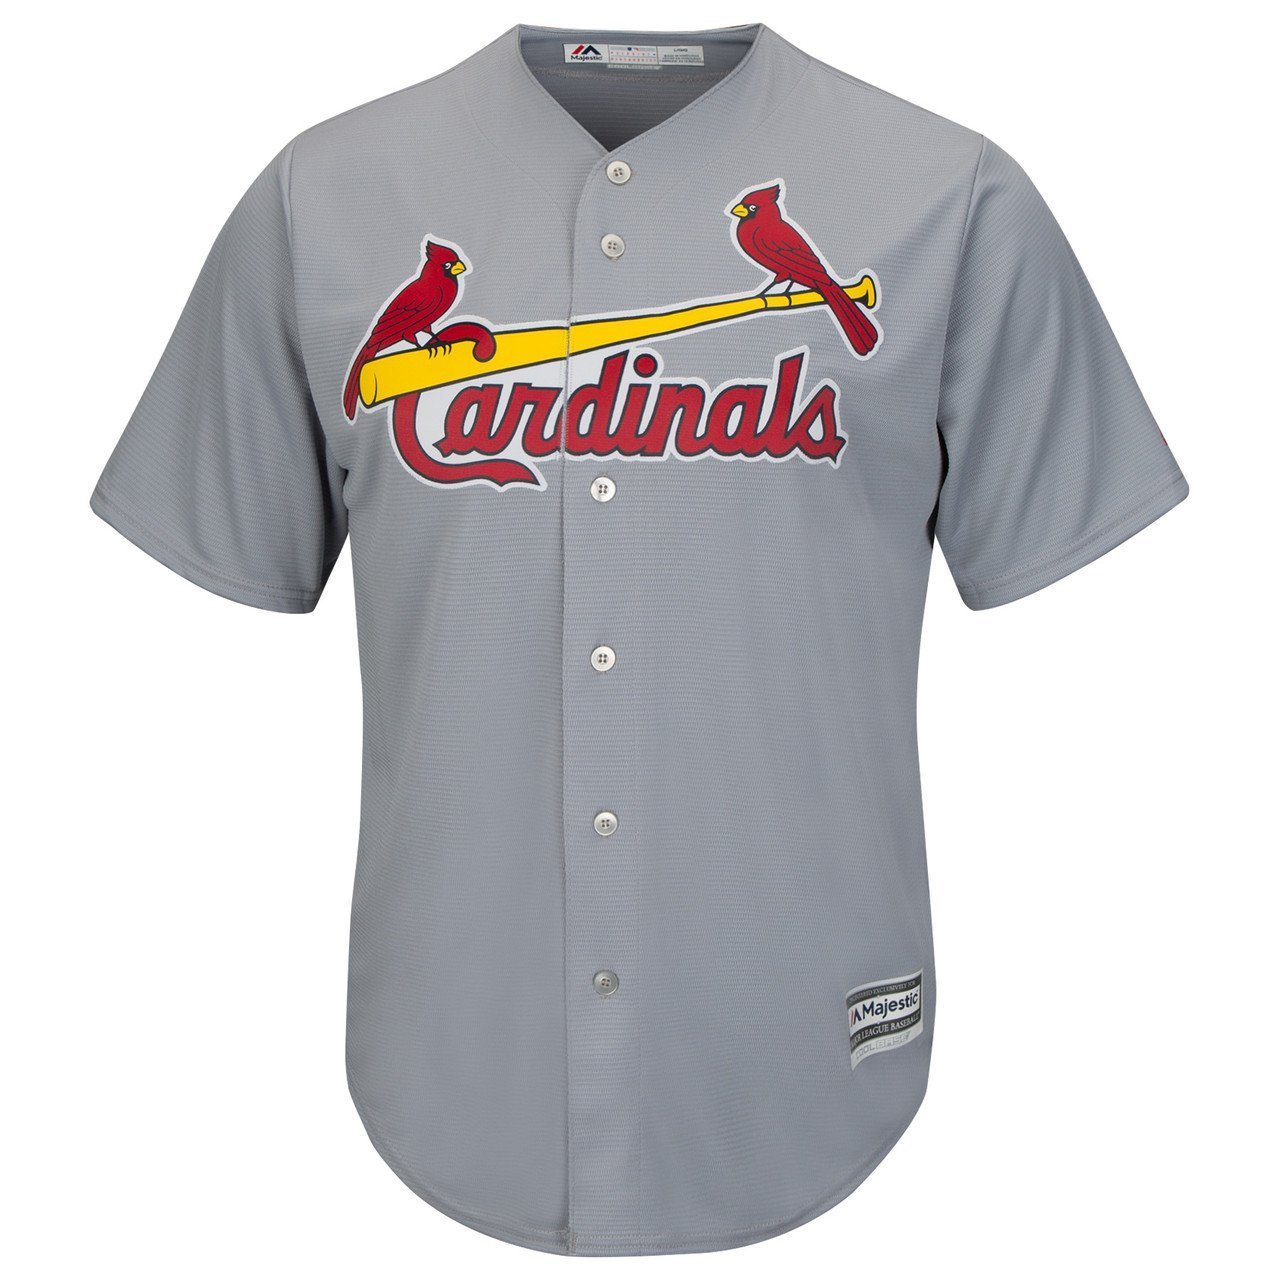 Louis amp; Outdoors Amazon Cardinals com Cool Base Jersey - Majestic M Authentic St Sports